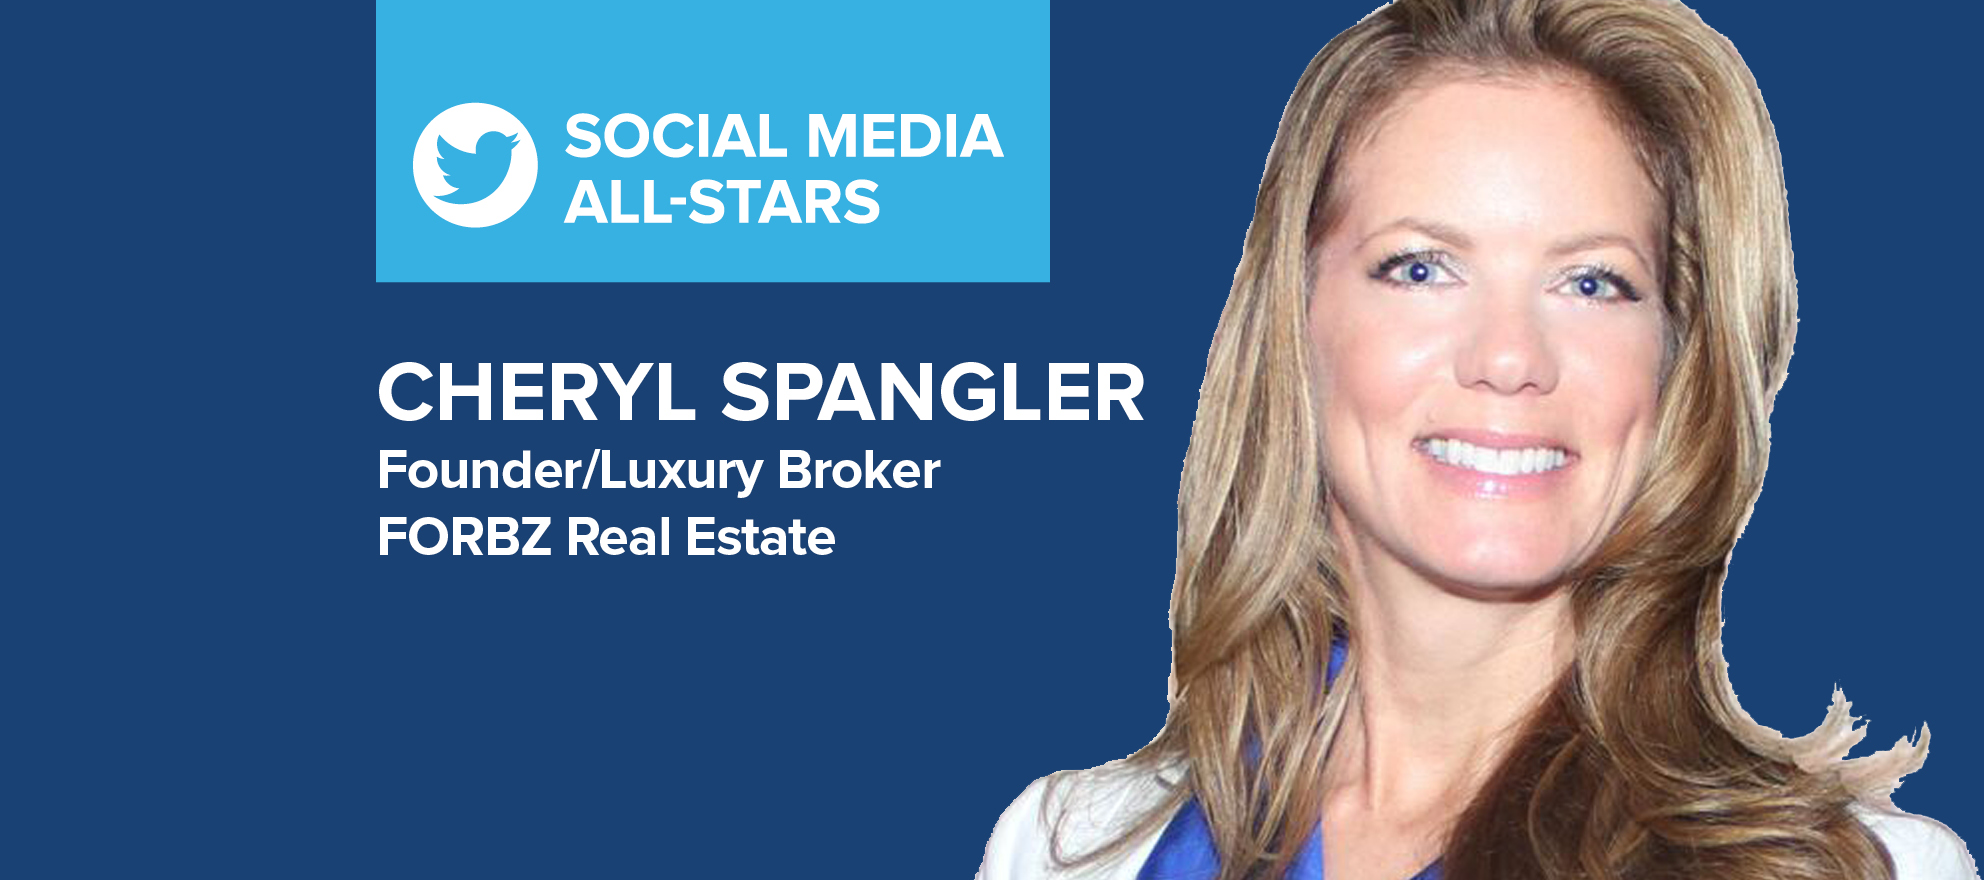 Cheryl Spangler: 'Social media is not going away; I will master it, period'